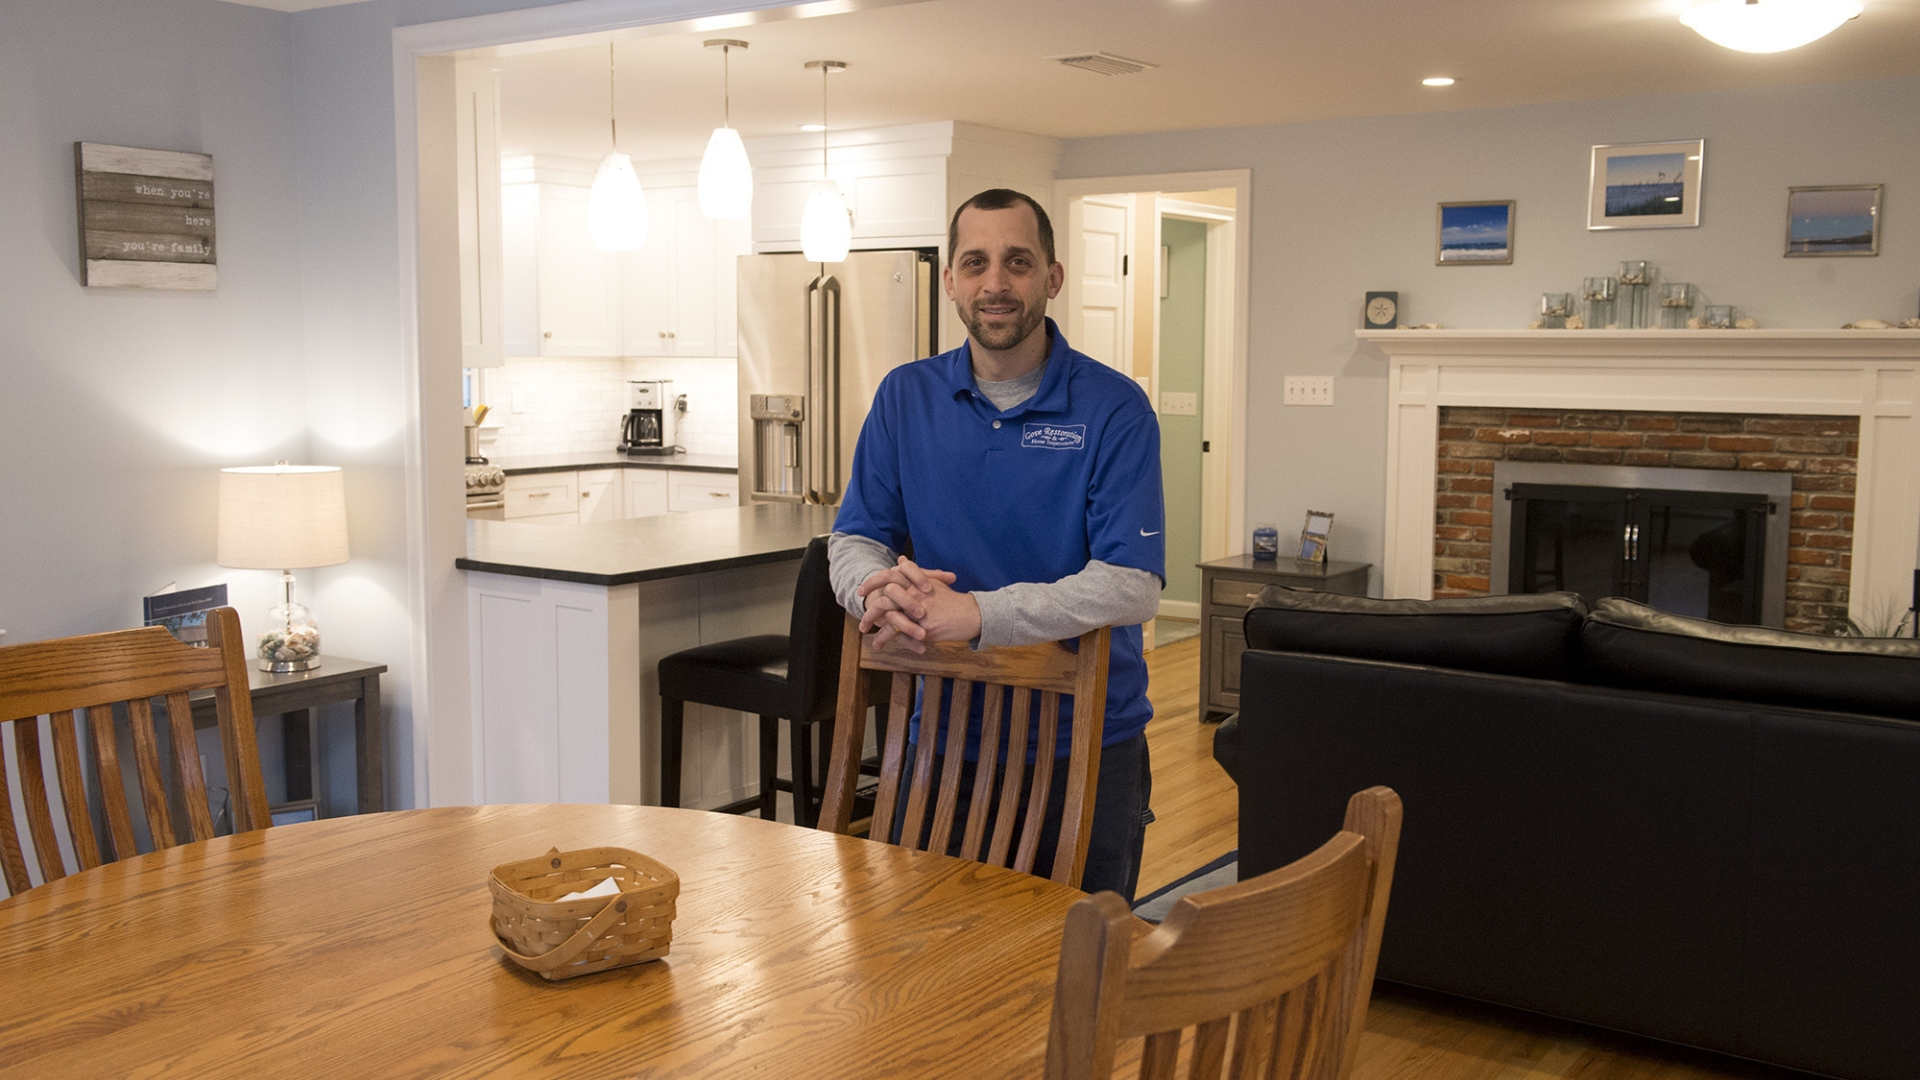 The Disappearing Dining Room Casual Lifestyles A Need For More Space Lead To A Trend Hartford Courant